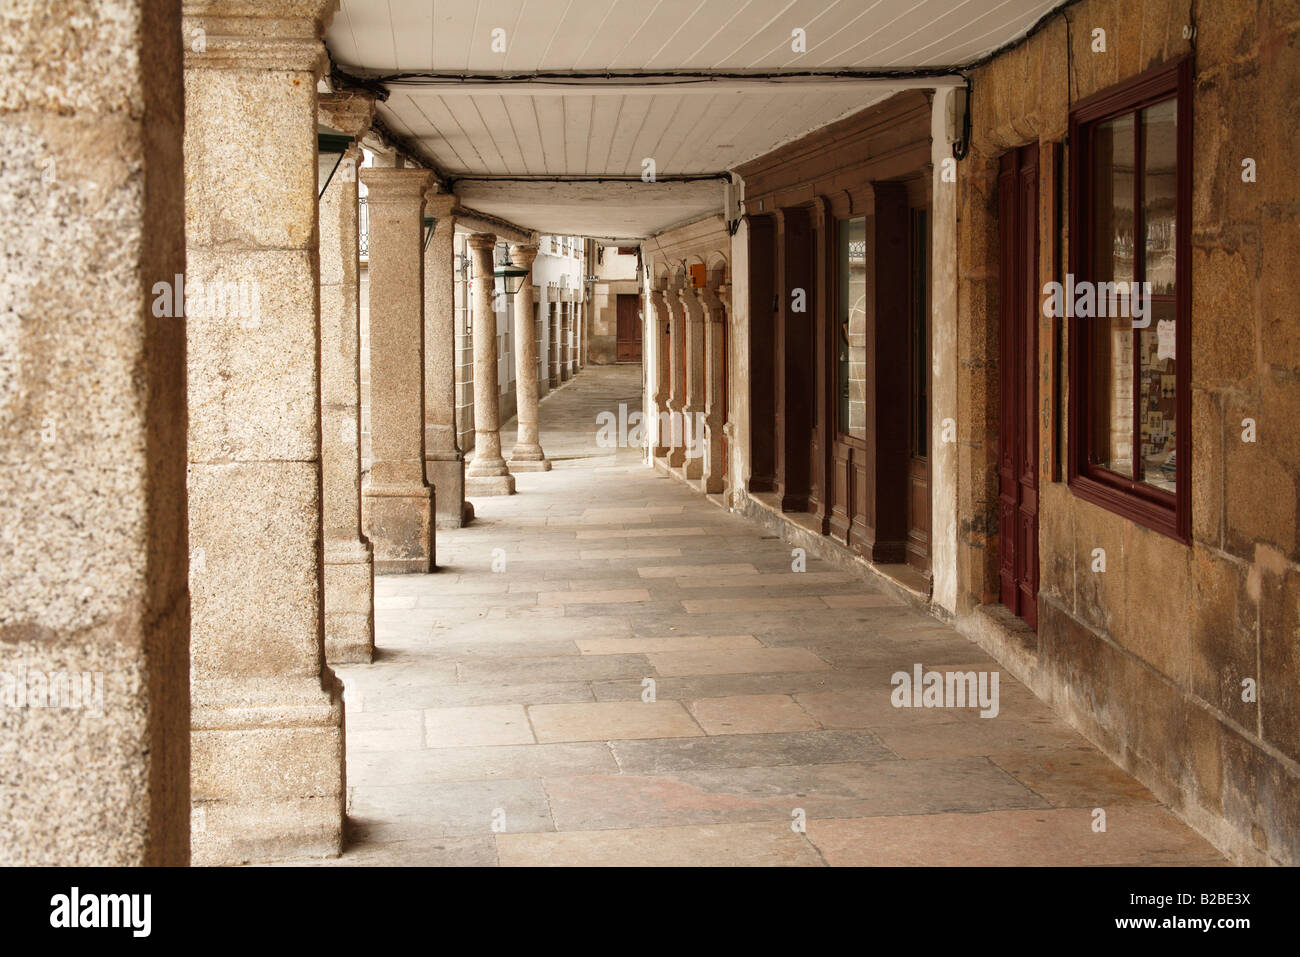 Mondonedo Galicia NW Spain Spain Ref SAVAGE 1319DF Compulsory Credit World Pictures Photoshot - Stock Image